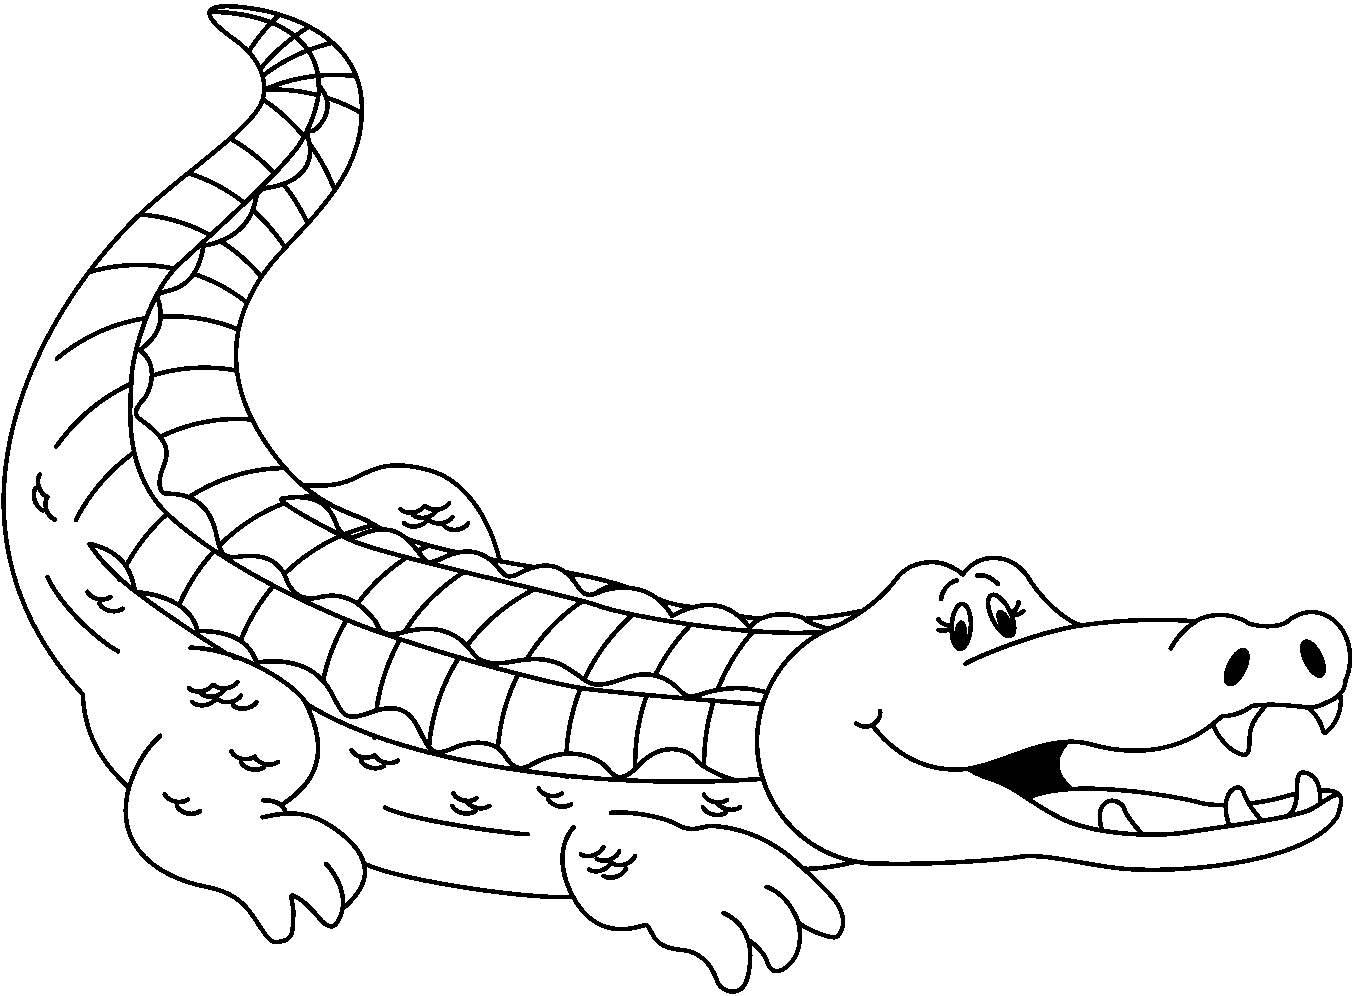 Alligator Cliparts